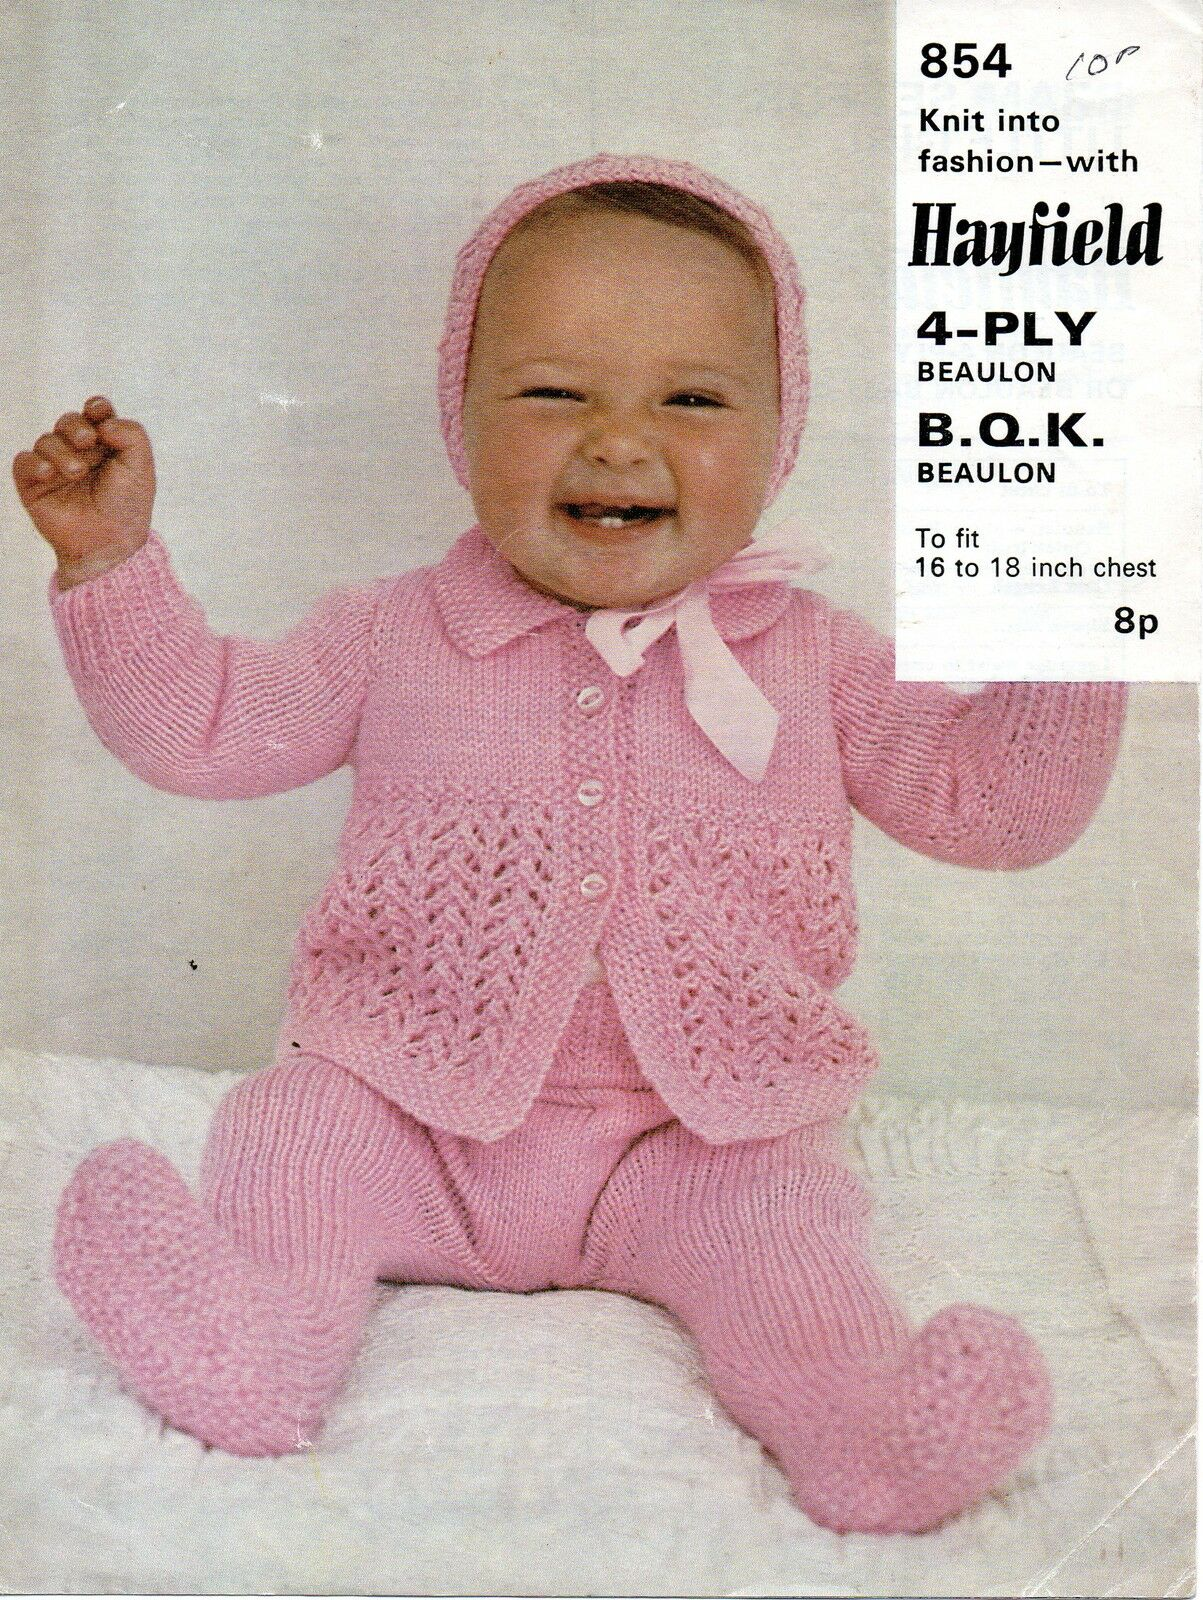 Hayfield Knitting Patterns For Babies : Hayfield 854 Vintage Baby Knitting Pattern 16-18